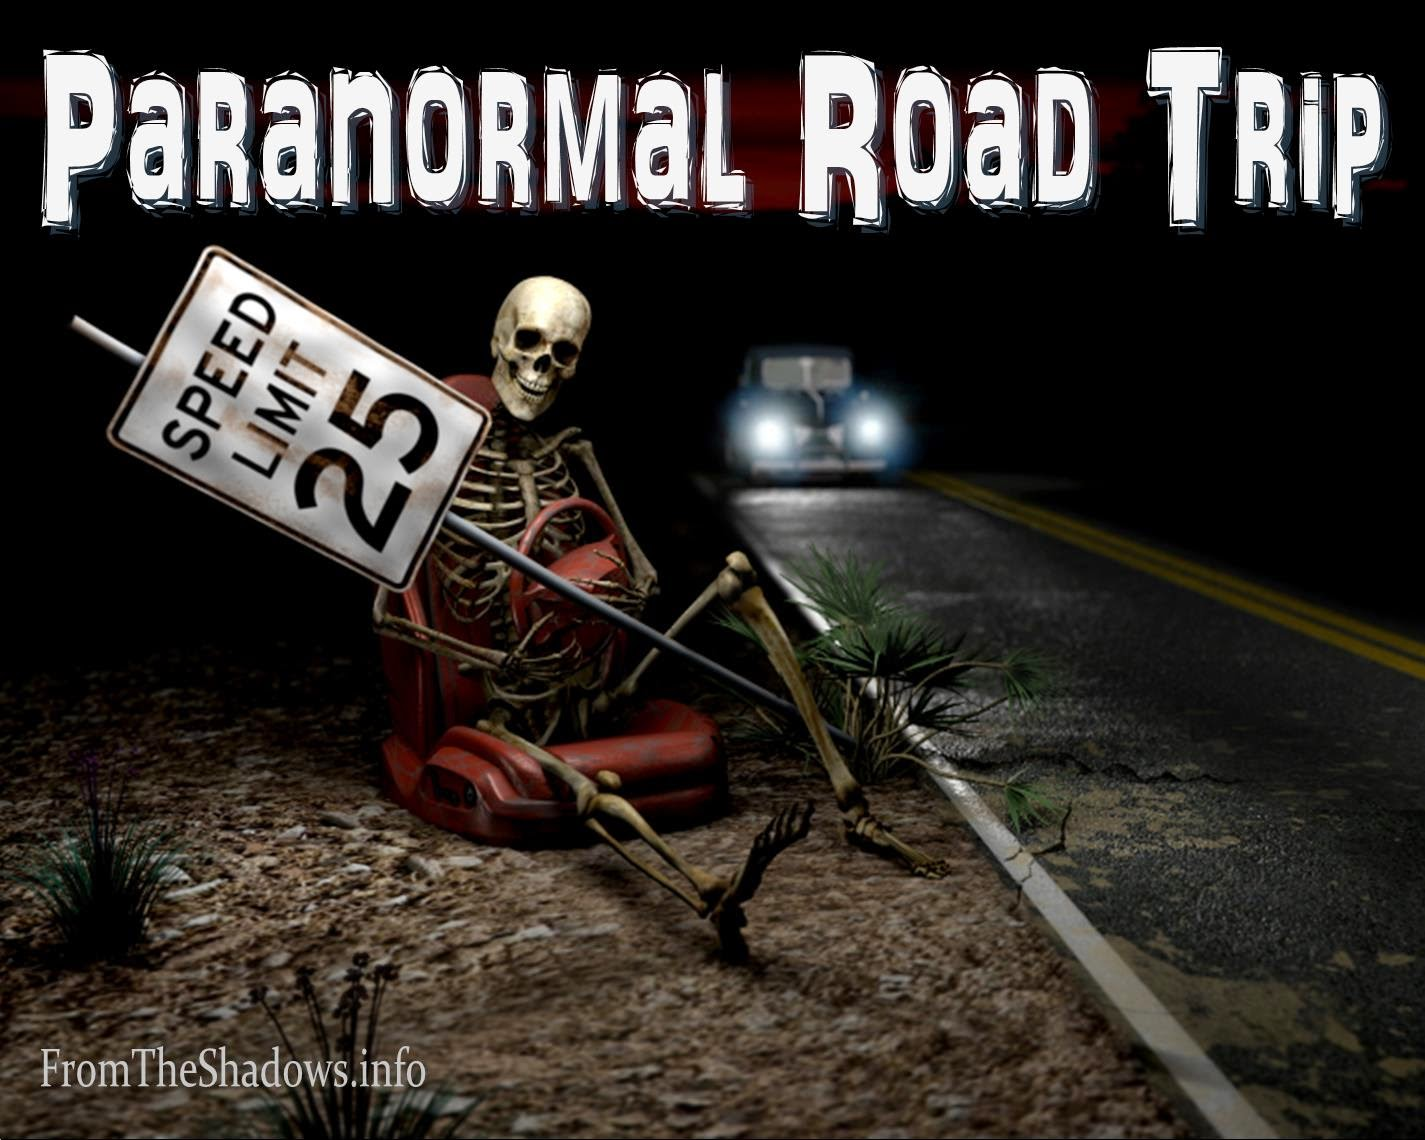 Paranormal Road Trip: Spooky Places in Eden, Kentucky with Sharon Buchbinder